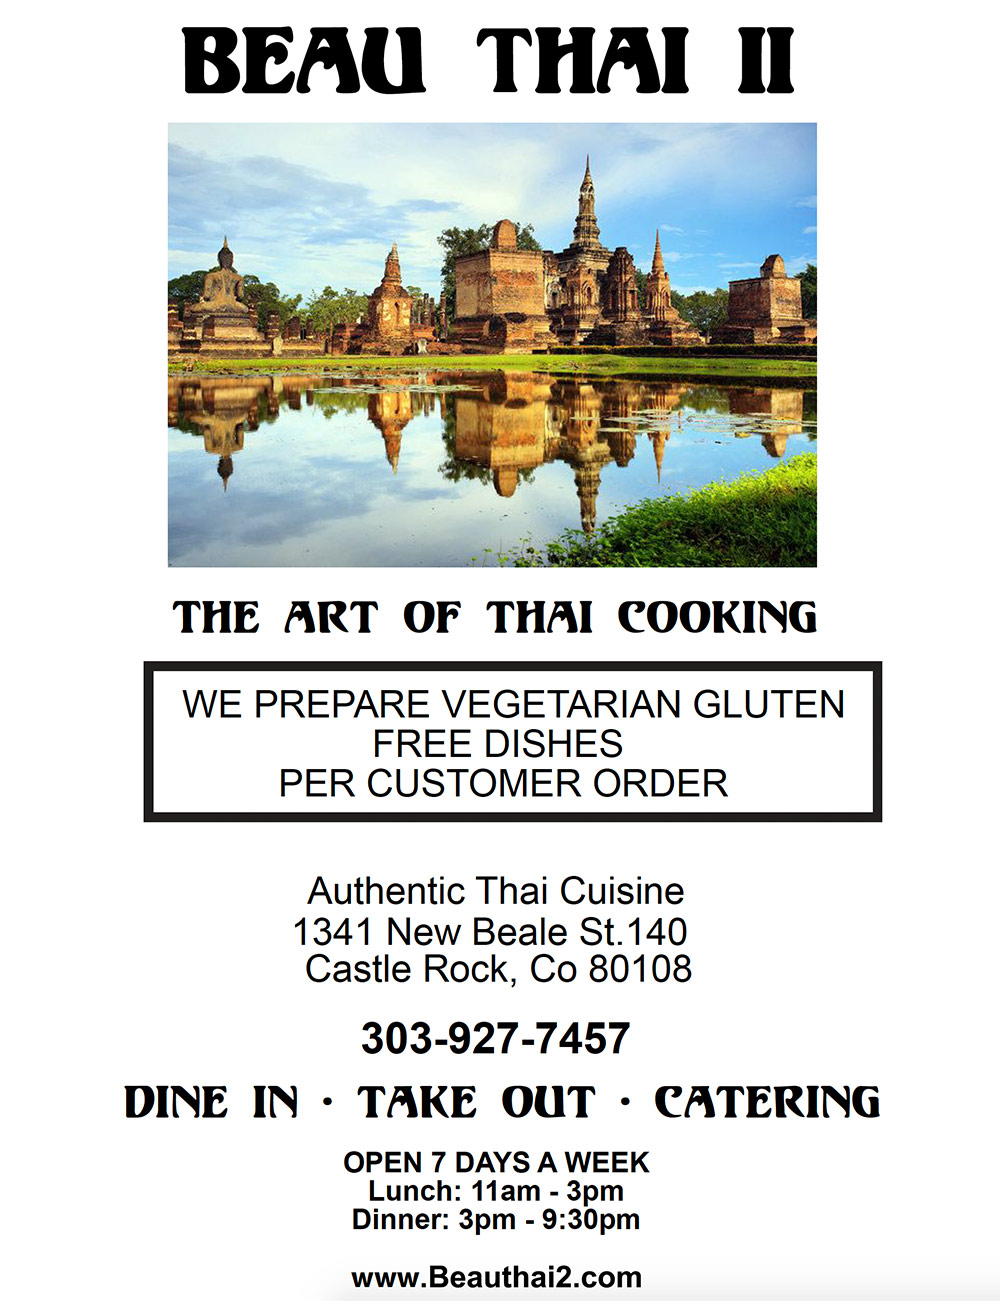 Beau Thai 2 - Castle Rock, Colorado - Menu Title Page